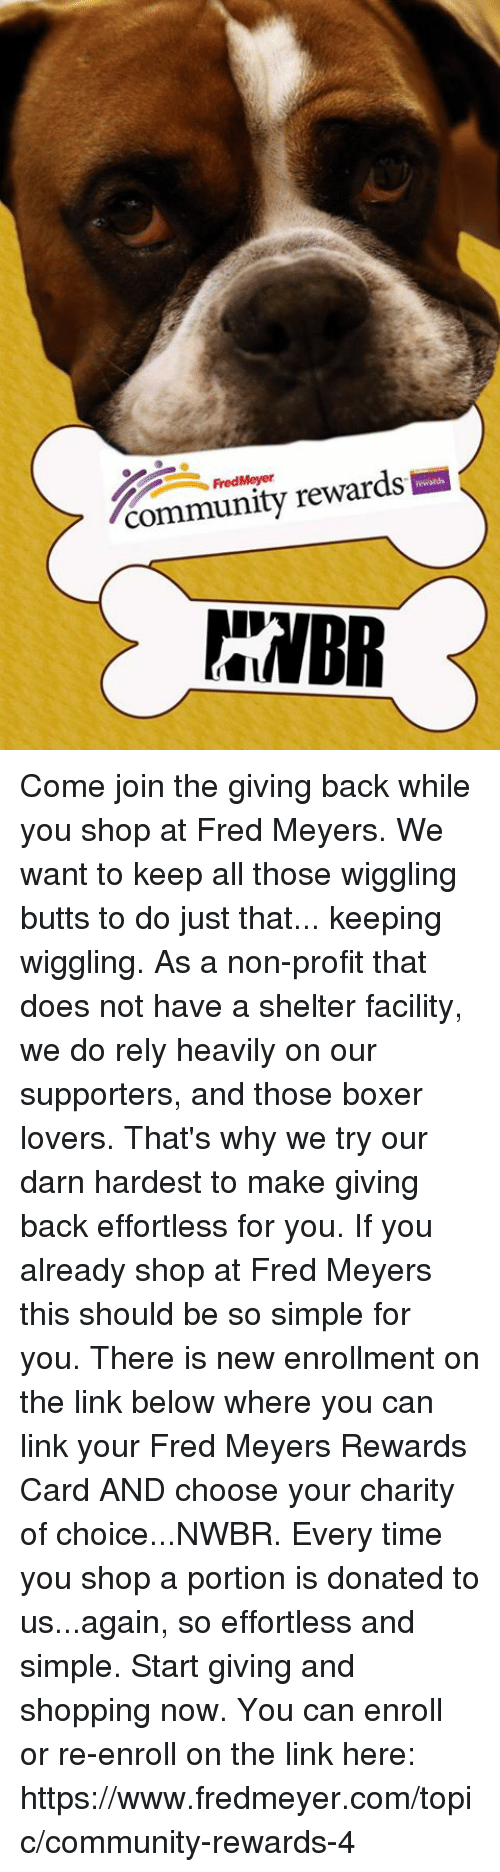 Community, Memes, and Shopping: FredMeyer  community rewards  BR Come join the giving back while you shop at Fred Meyers. We want to keep all those wiggling butts to do just that... keeping wiggling. As a non-profit that does not have a shelter facility, we do rely heavily on our supporters, and those boxer lovers. That's why we try our darn hardest to make giving back effortless for you.   If you already shop at Fred Meyers this should be so simple for you. There is new enrollment on the link below where you can link your Fred Meyers Rewards Card AND choose your charity of choice...NWBR. Every time you shop a portion is donated to us...again, so effortless and simple.  Start giving and shopping now. You can enroll or re-enroll on the link here: https://www.fredmeyer.com/topic/community-rewards-4